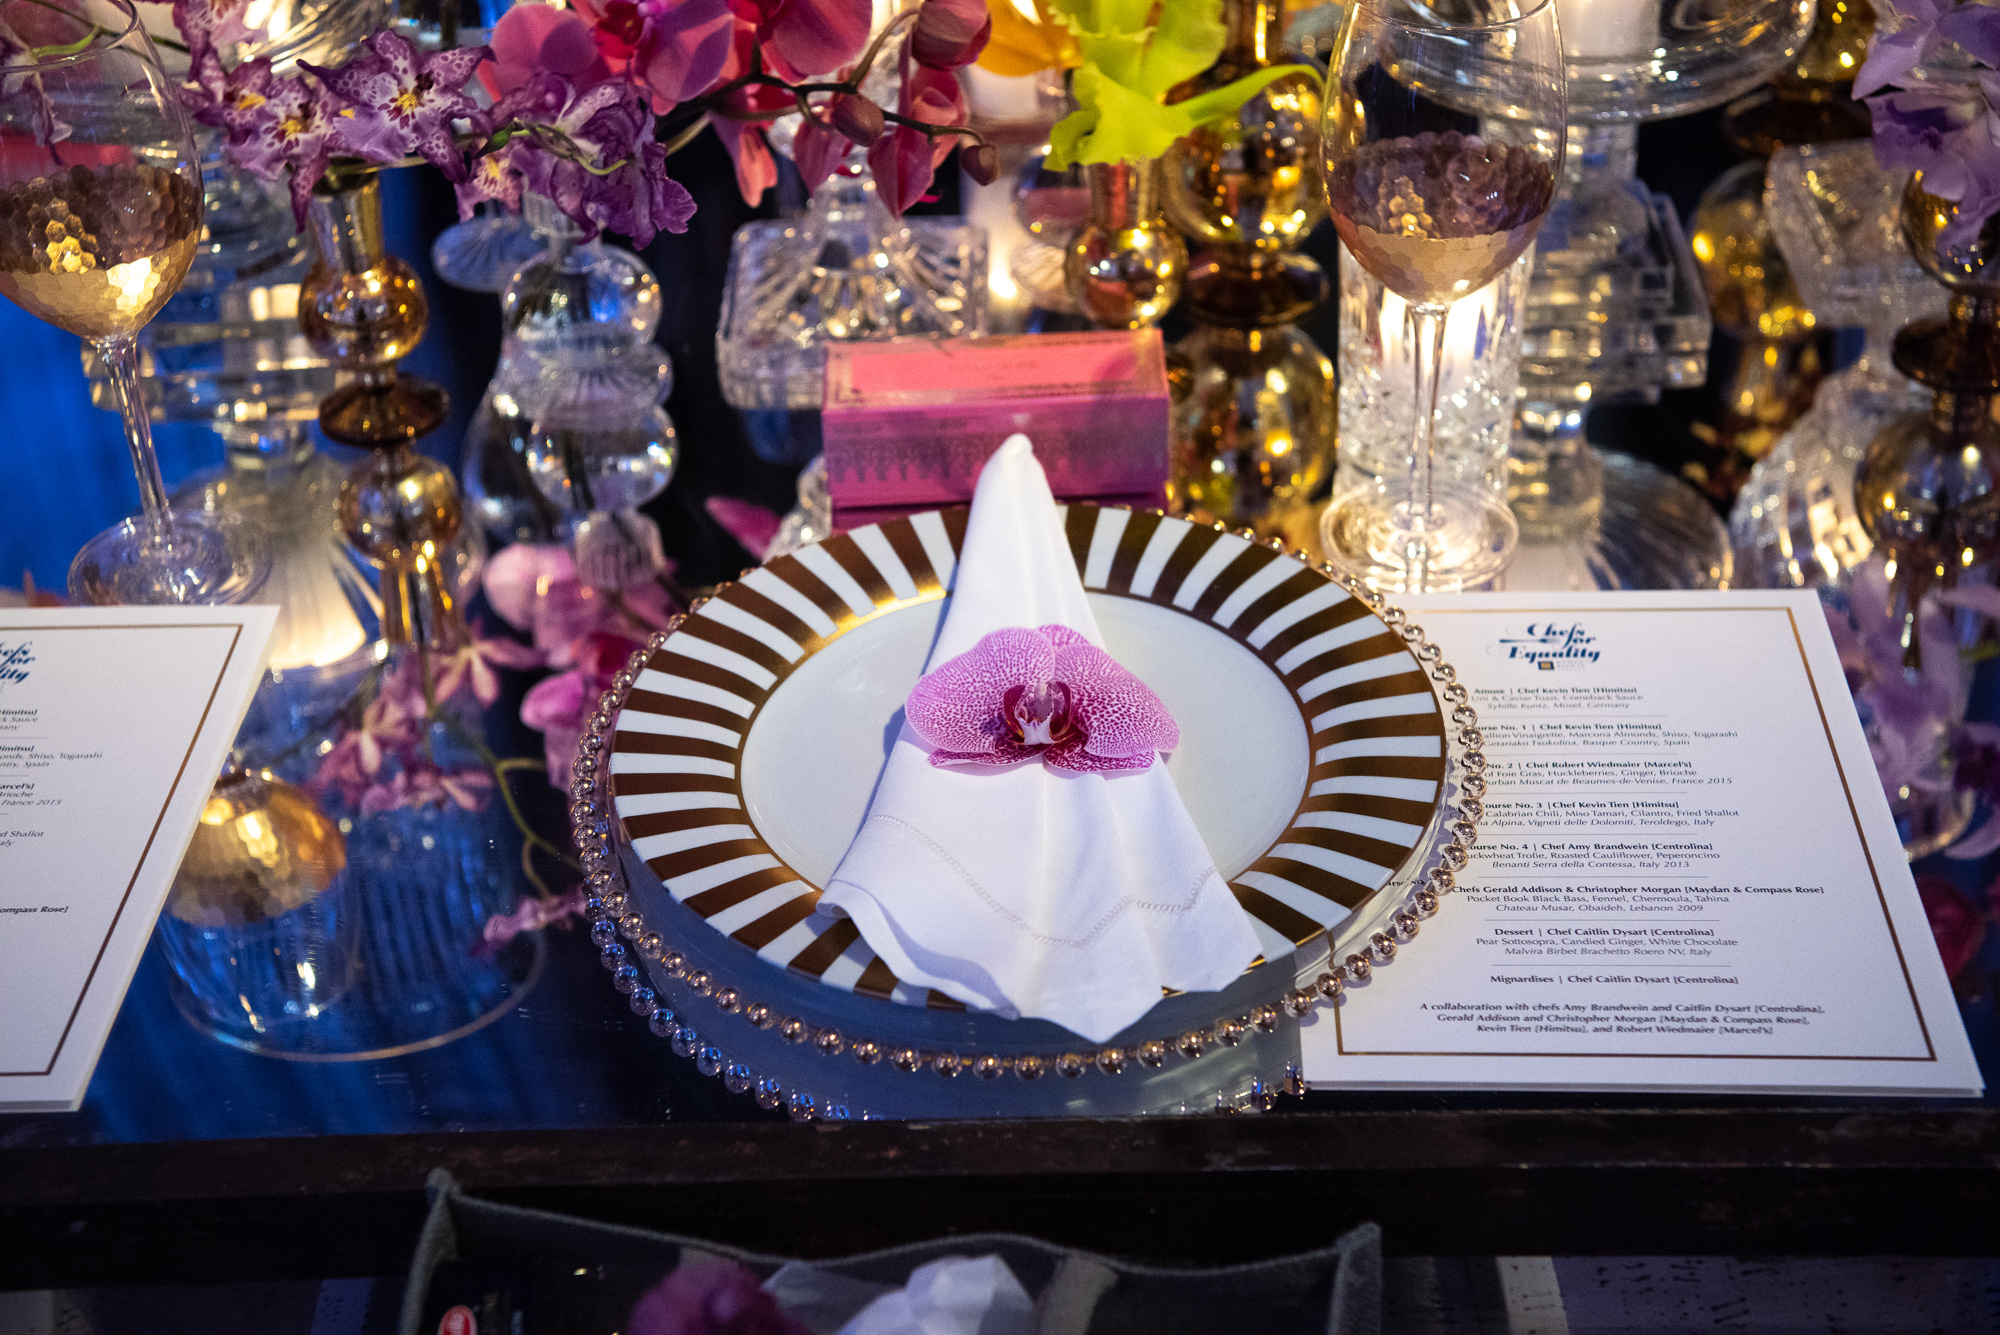 Christopher Vazquez and Rick Davis, of Amaryllis Floral + Event Design, took care of the evening's aesthetic including the table arrangements for the private chefs tables. (Image:{ }Jeff Martin for Human Rights Campaign)